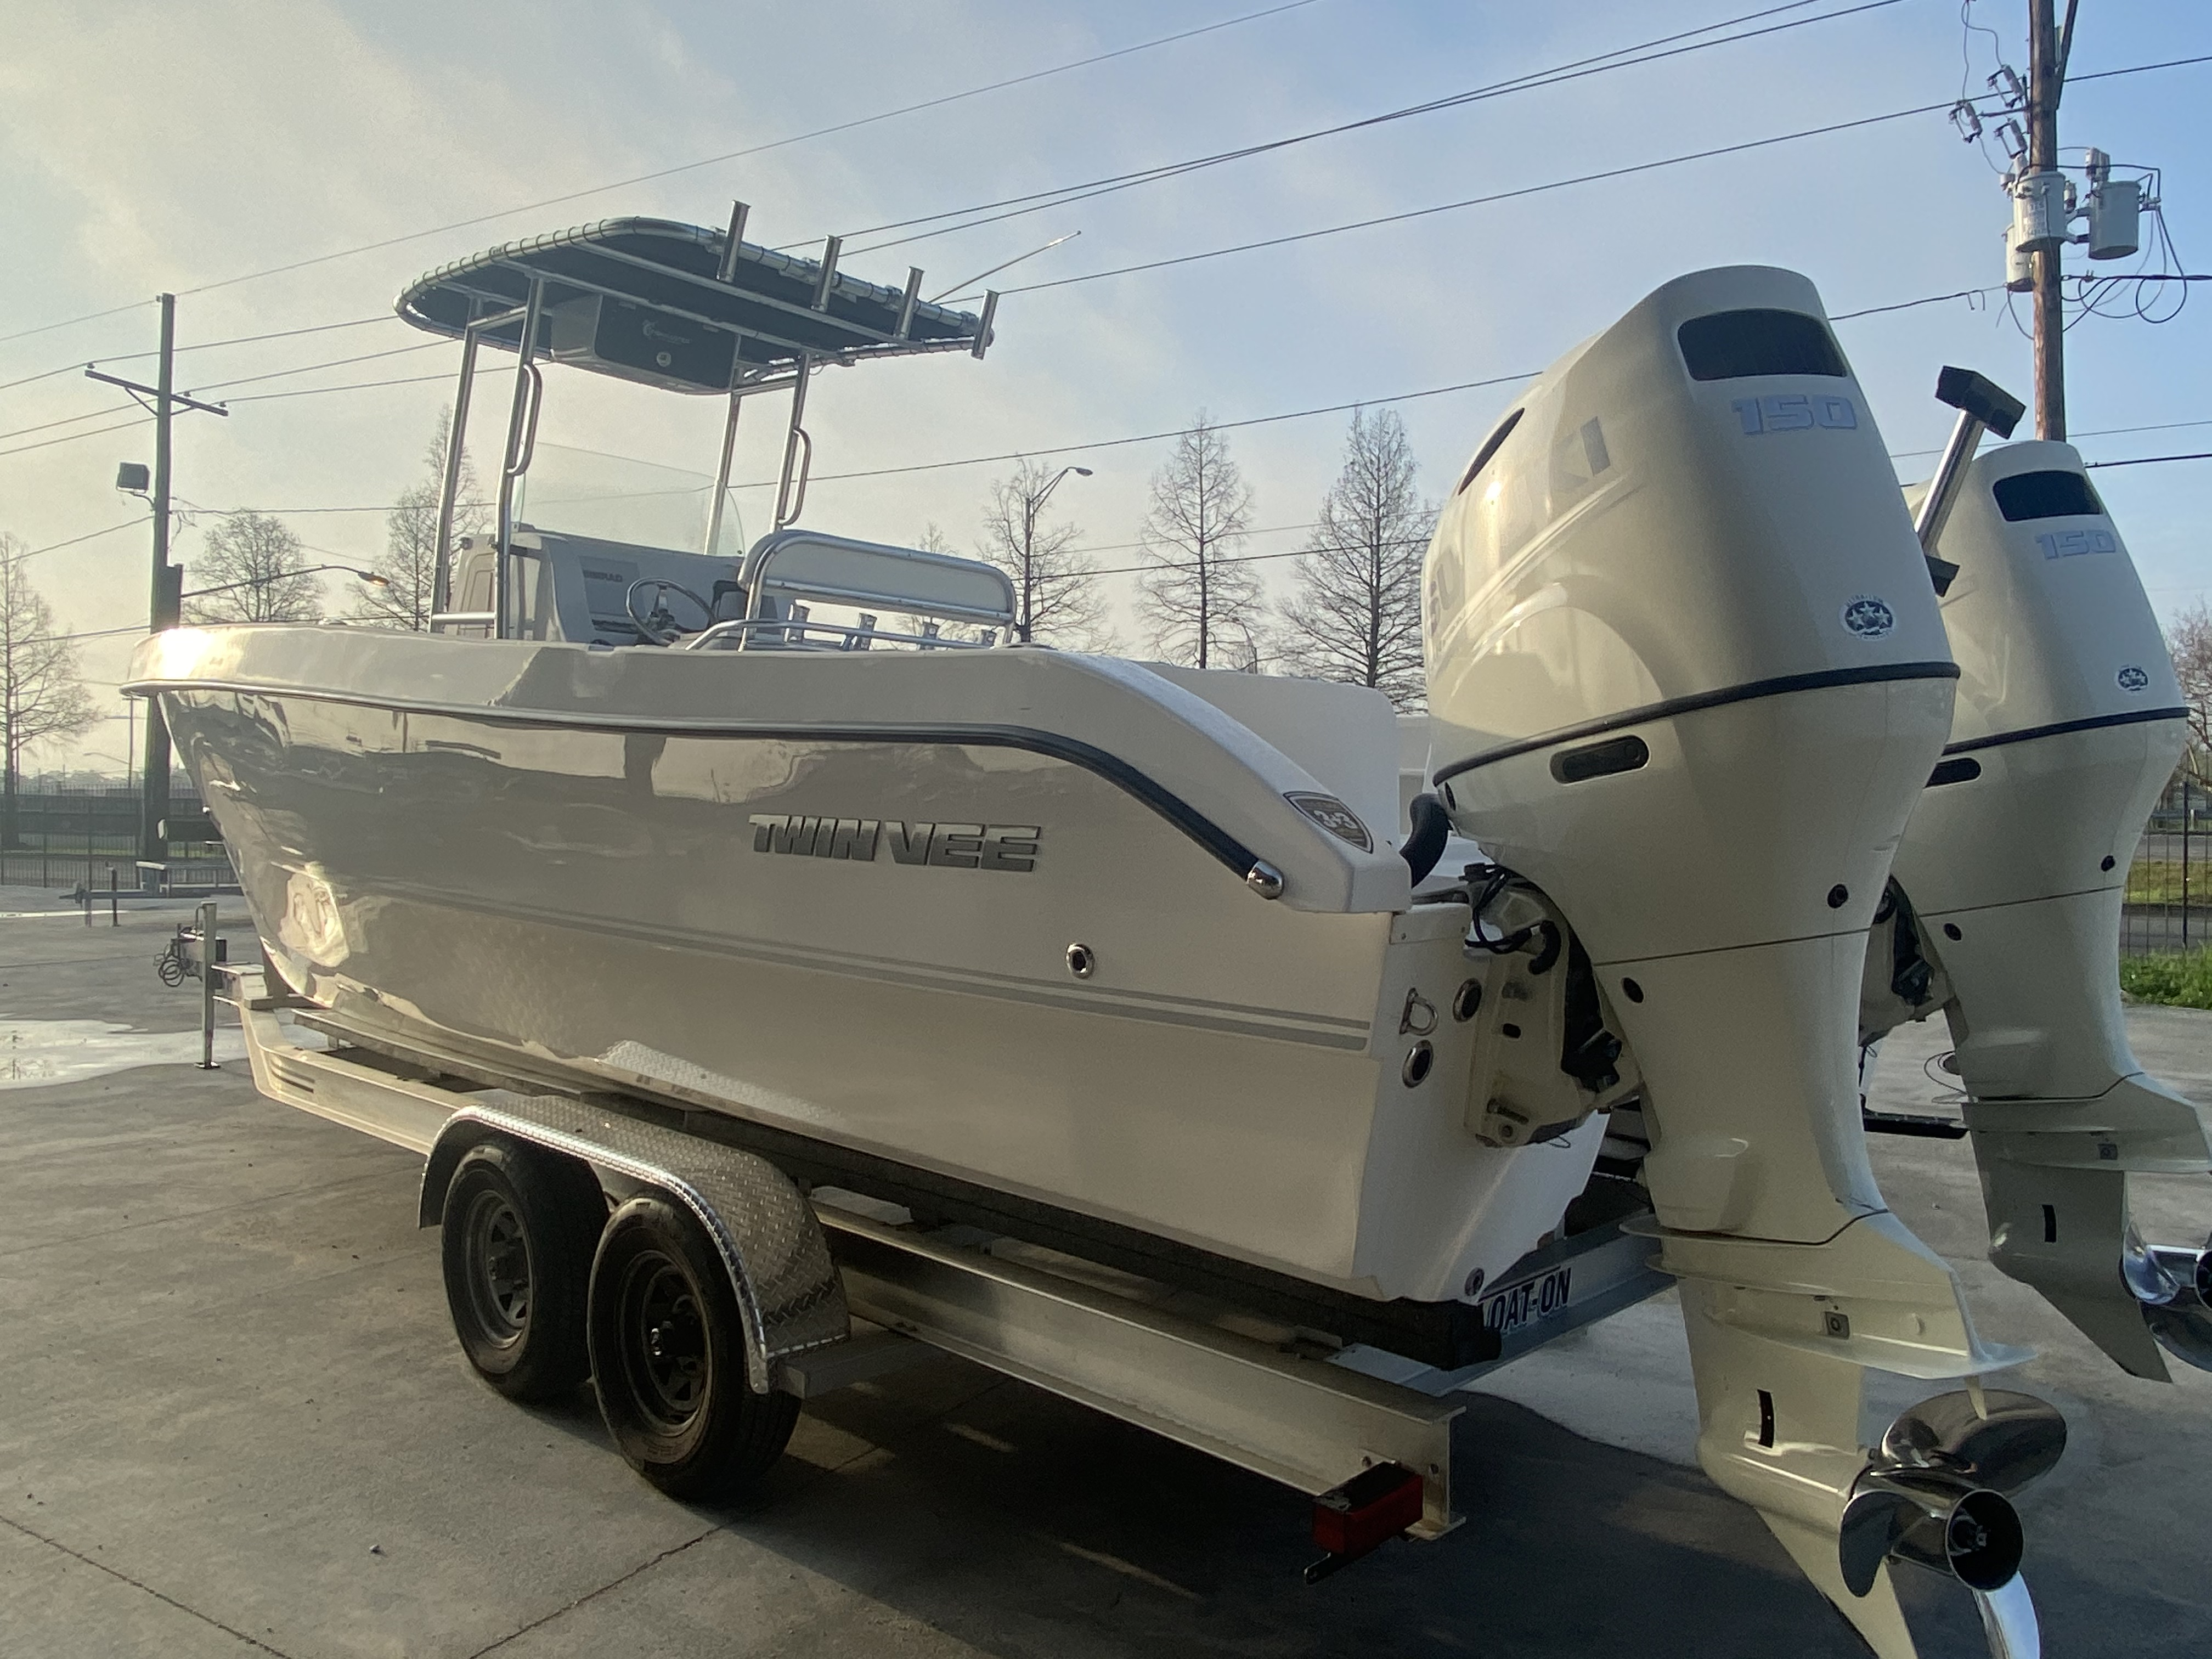 2020 Twin Vee boat for sale, model of the boat is 26 Pro & Image # 12 of 24